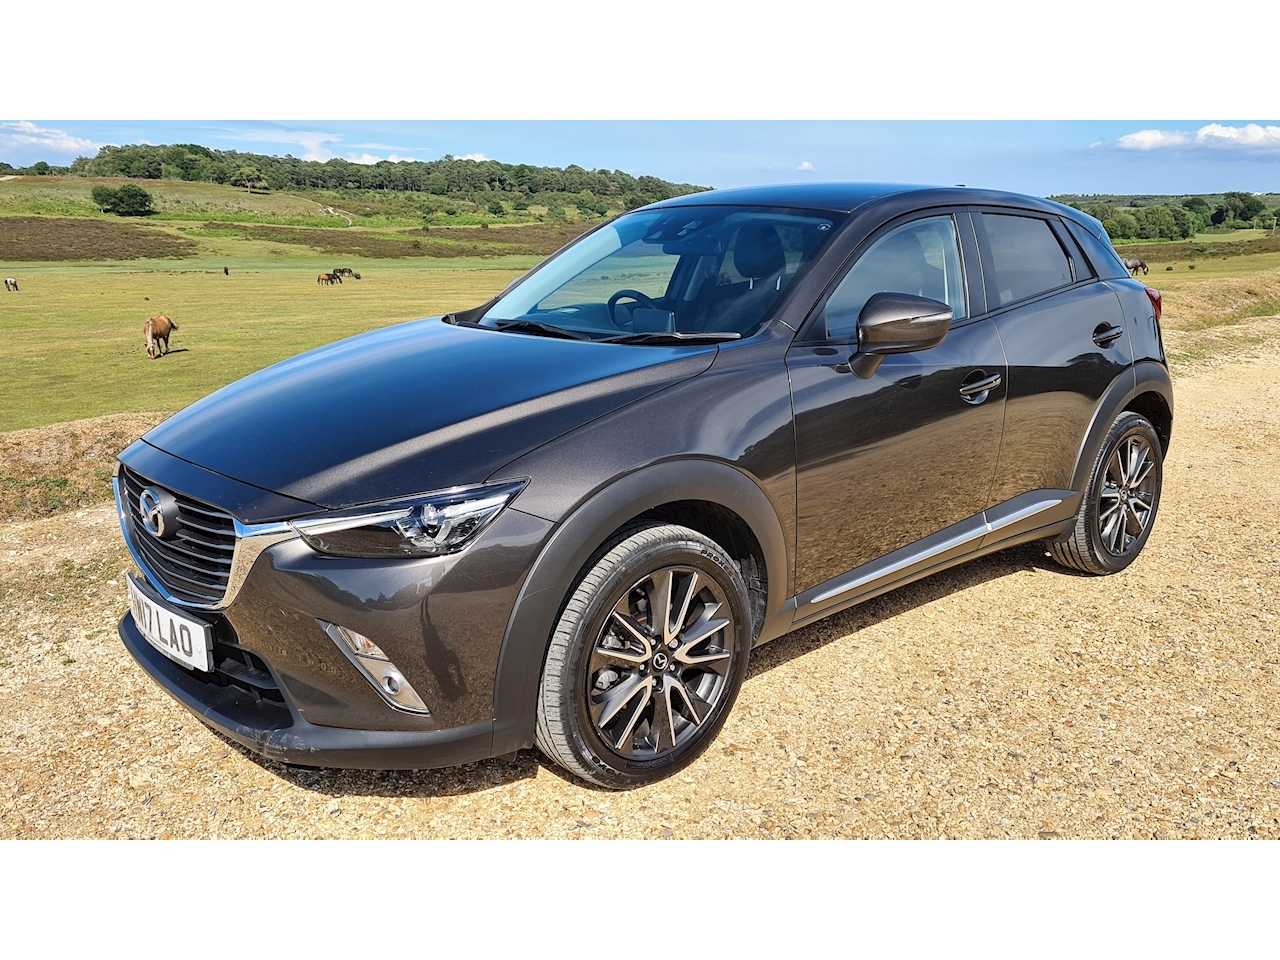 Mazda Cx-3 Sport Nav Hatchback 2.0 Manual Petrol